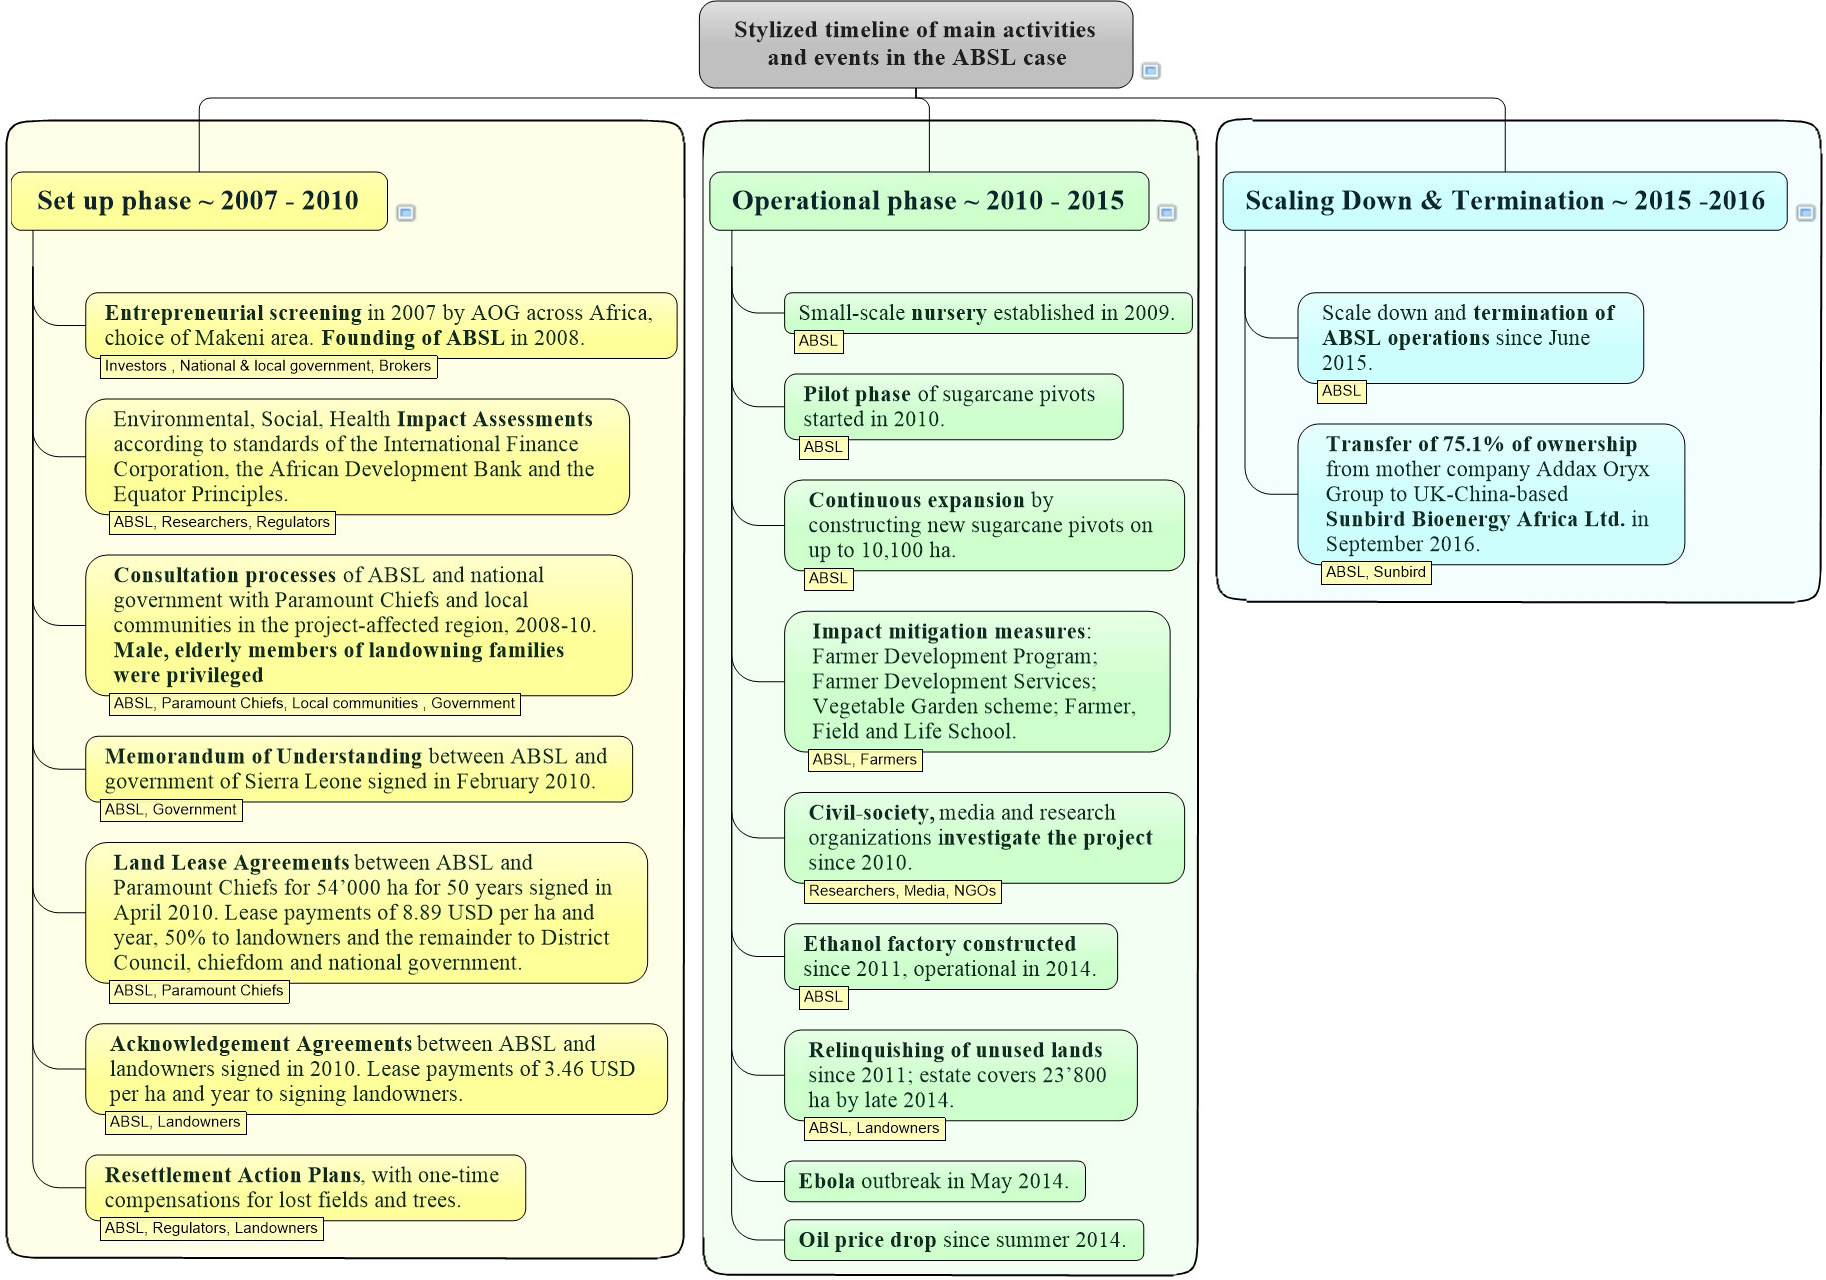 Fig  3  Stylized timeline of main activities and events in the ABSL